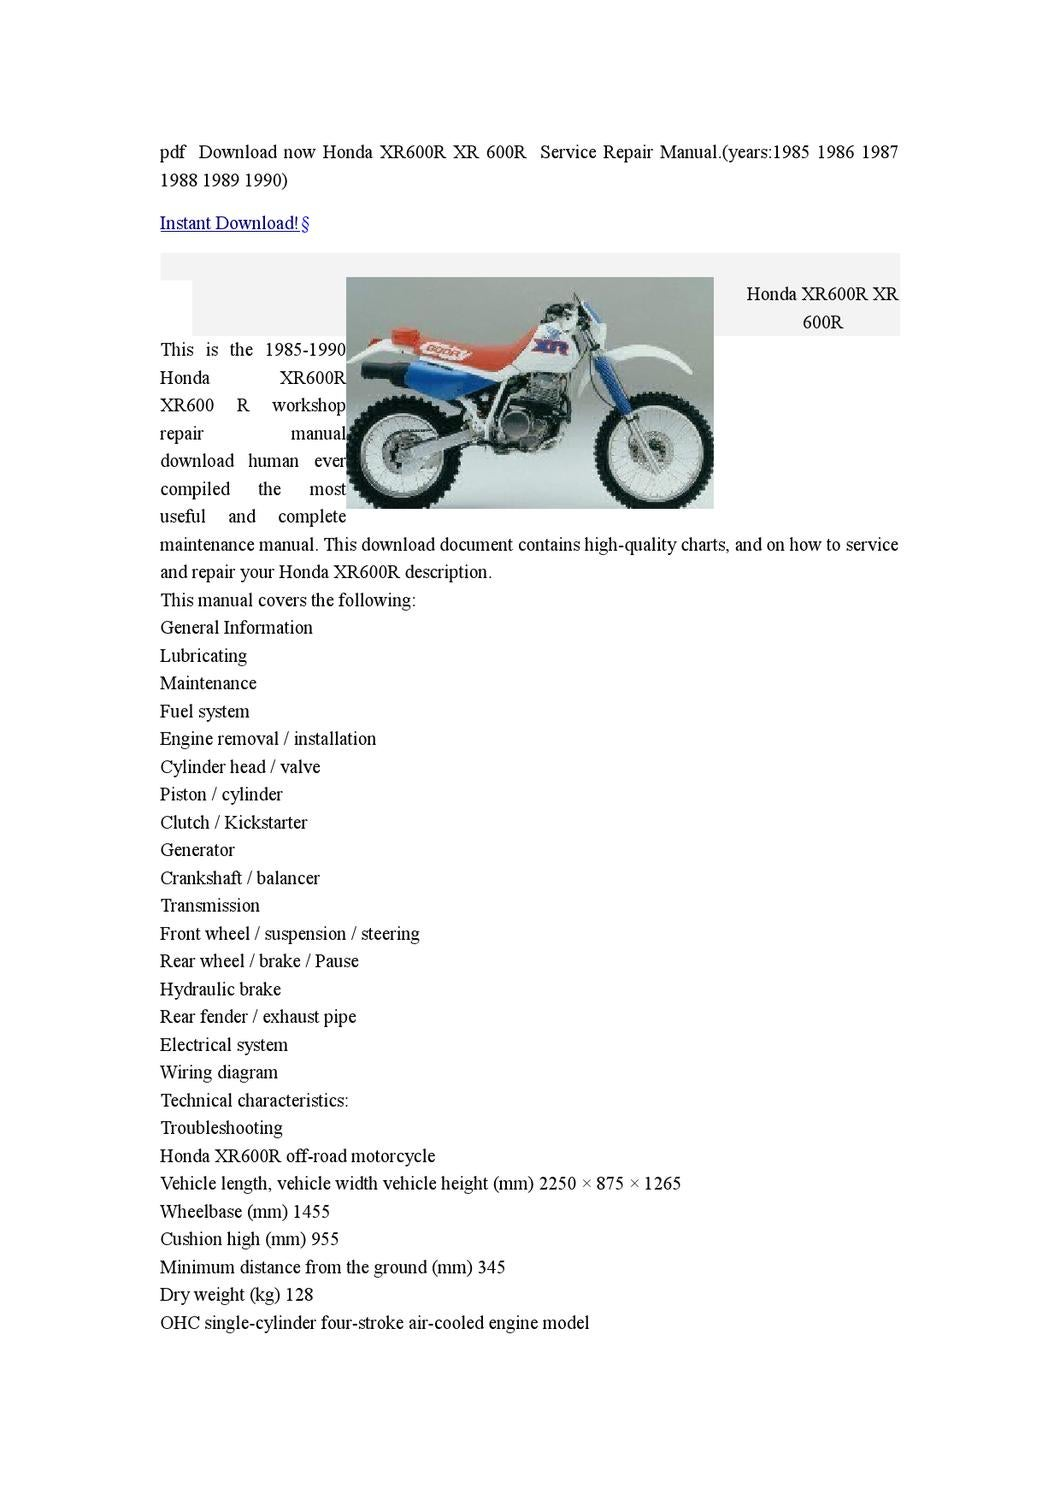 1985 1986 1987 1988 1989 1990 Honda Xr600r Xr 600r Workshop Service Repair Manual Download By